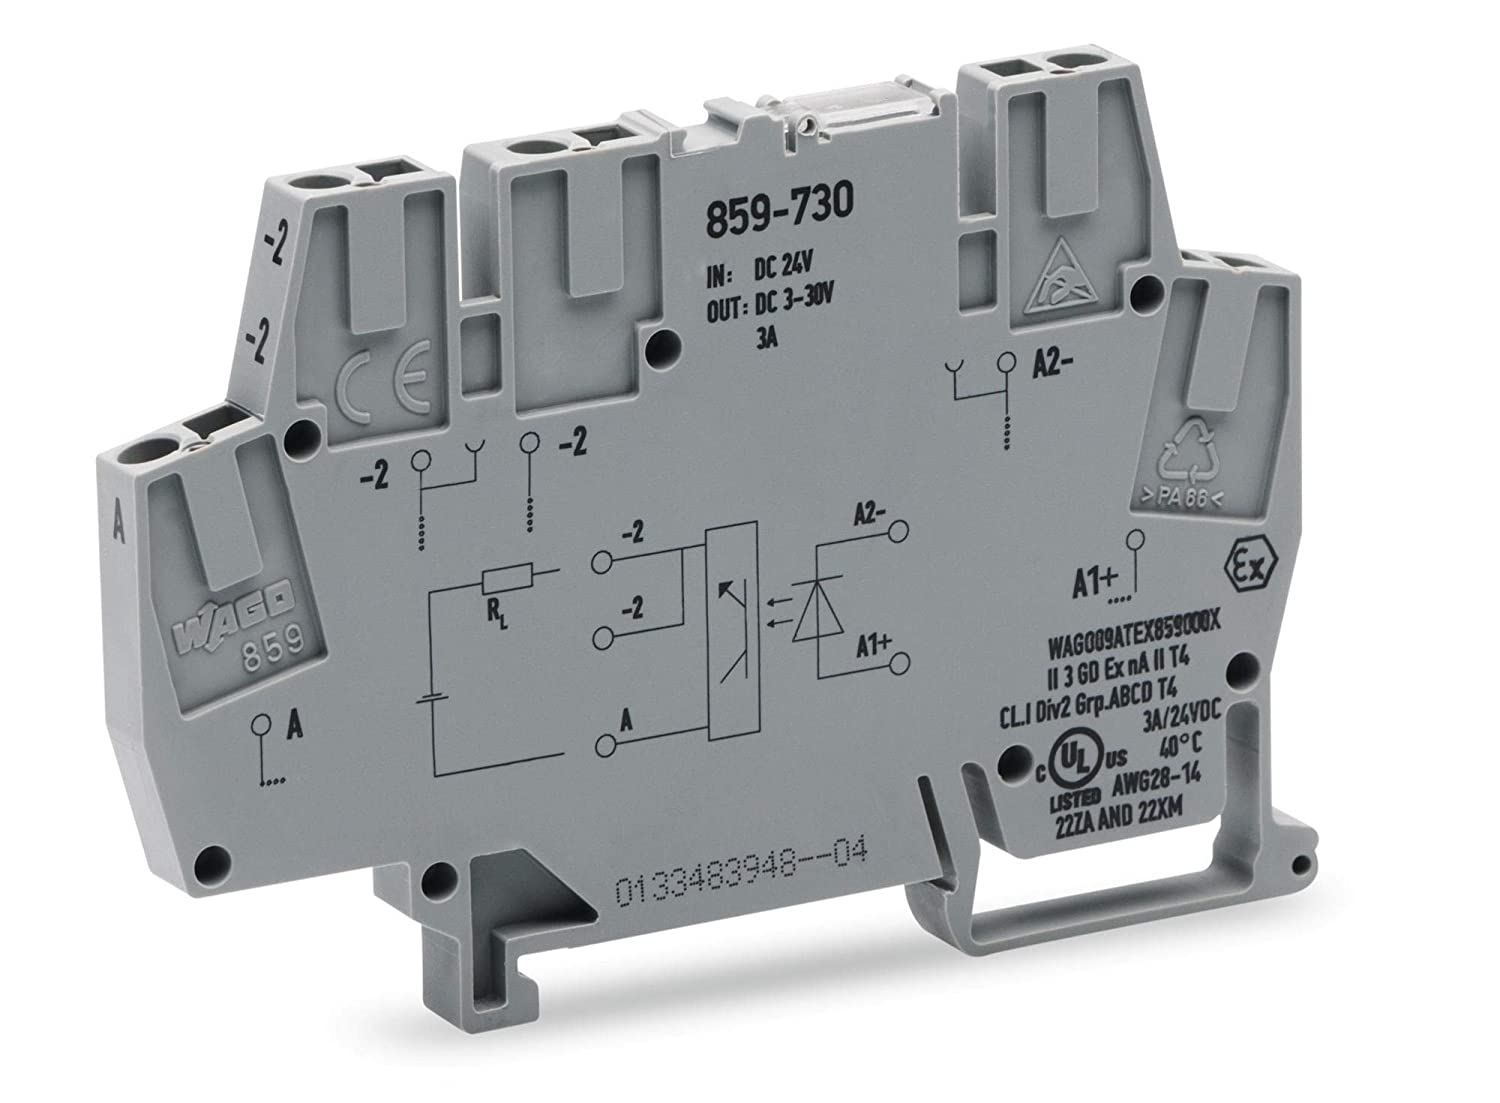 28 AWG WAGO 859-730 DIN Rail Mount Terminal Block 2.5 mm? 3 A Clamp 5 Positions Optocoupler 14 AWG